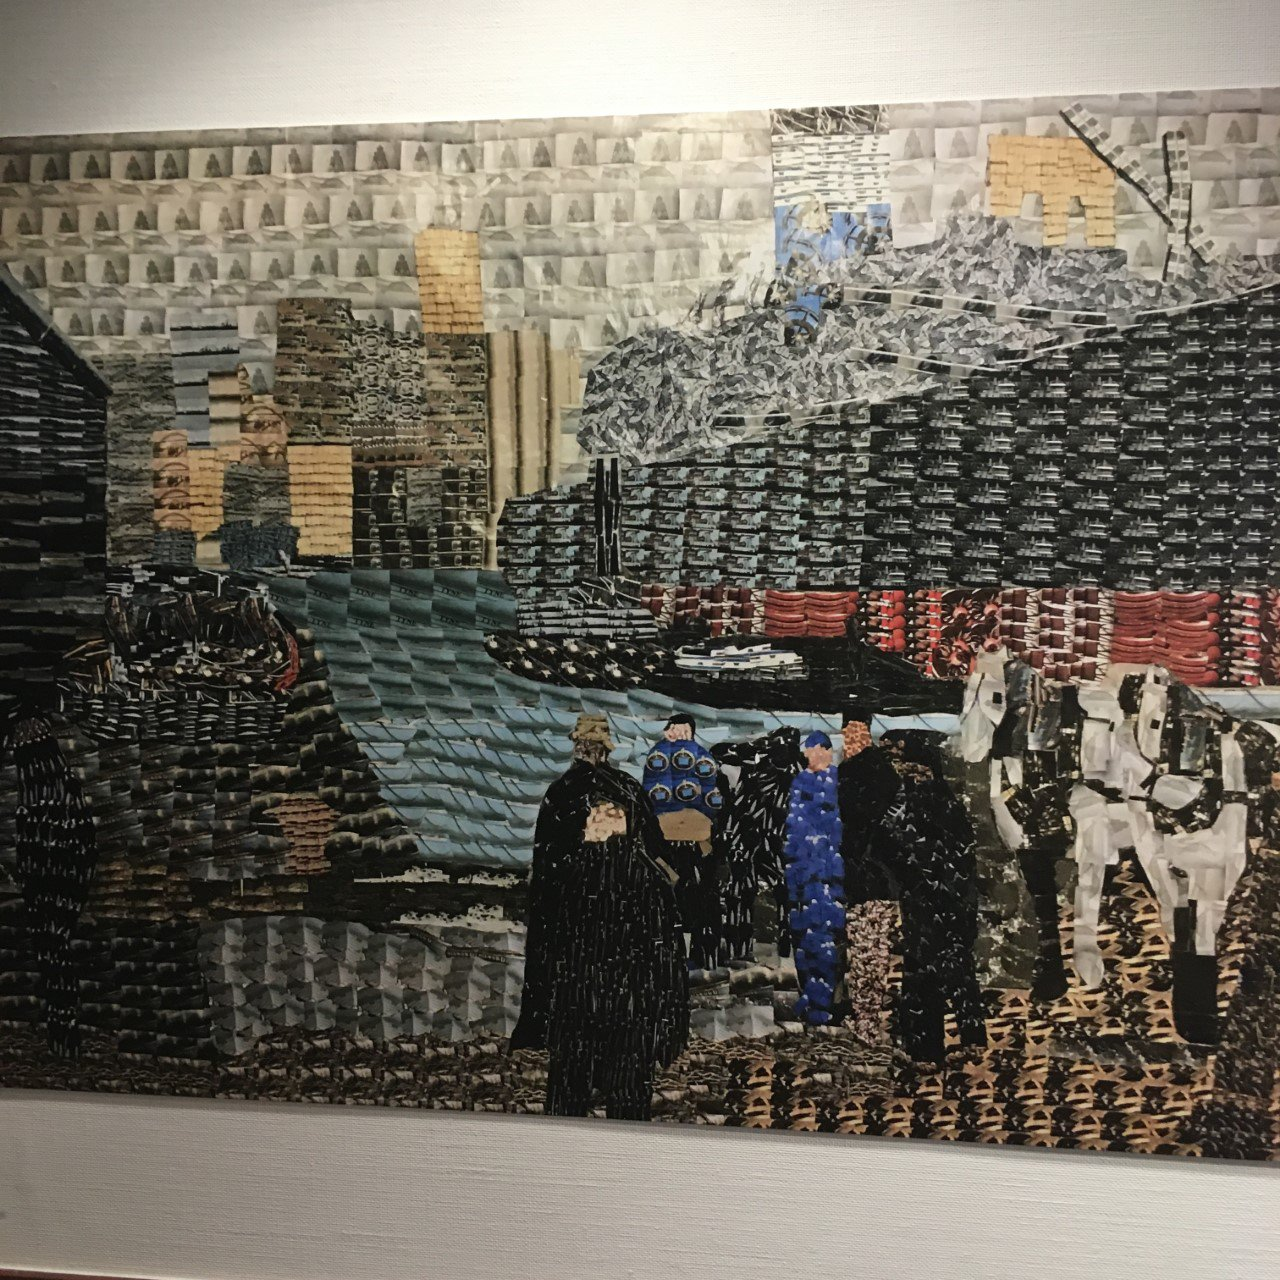 Image: The artwork designed by SS Peter and Paul RC Primary School, South Shields, 10–11 year-olds. Using photographs taken of their local waterfront, Year 6 made their own version of 'Men of the Docks' in response to the Take One Picture project.